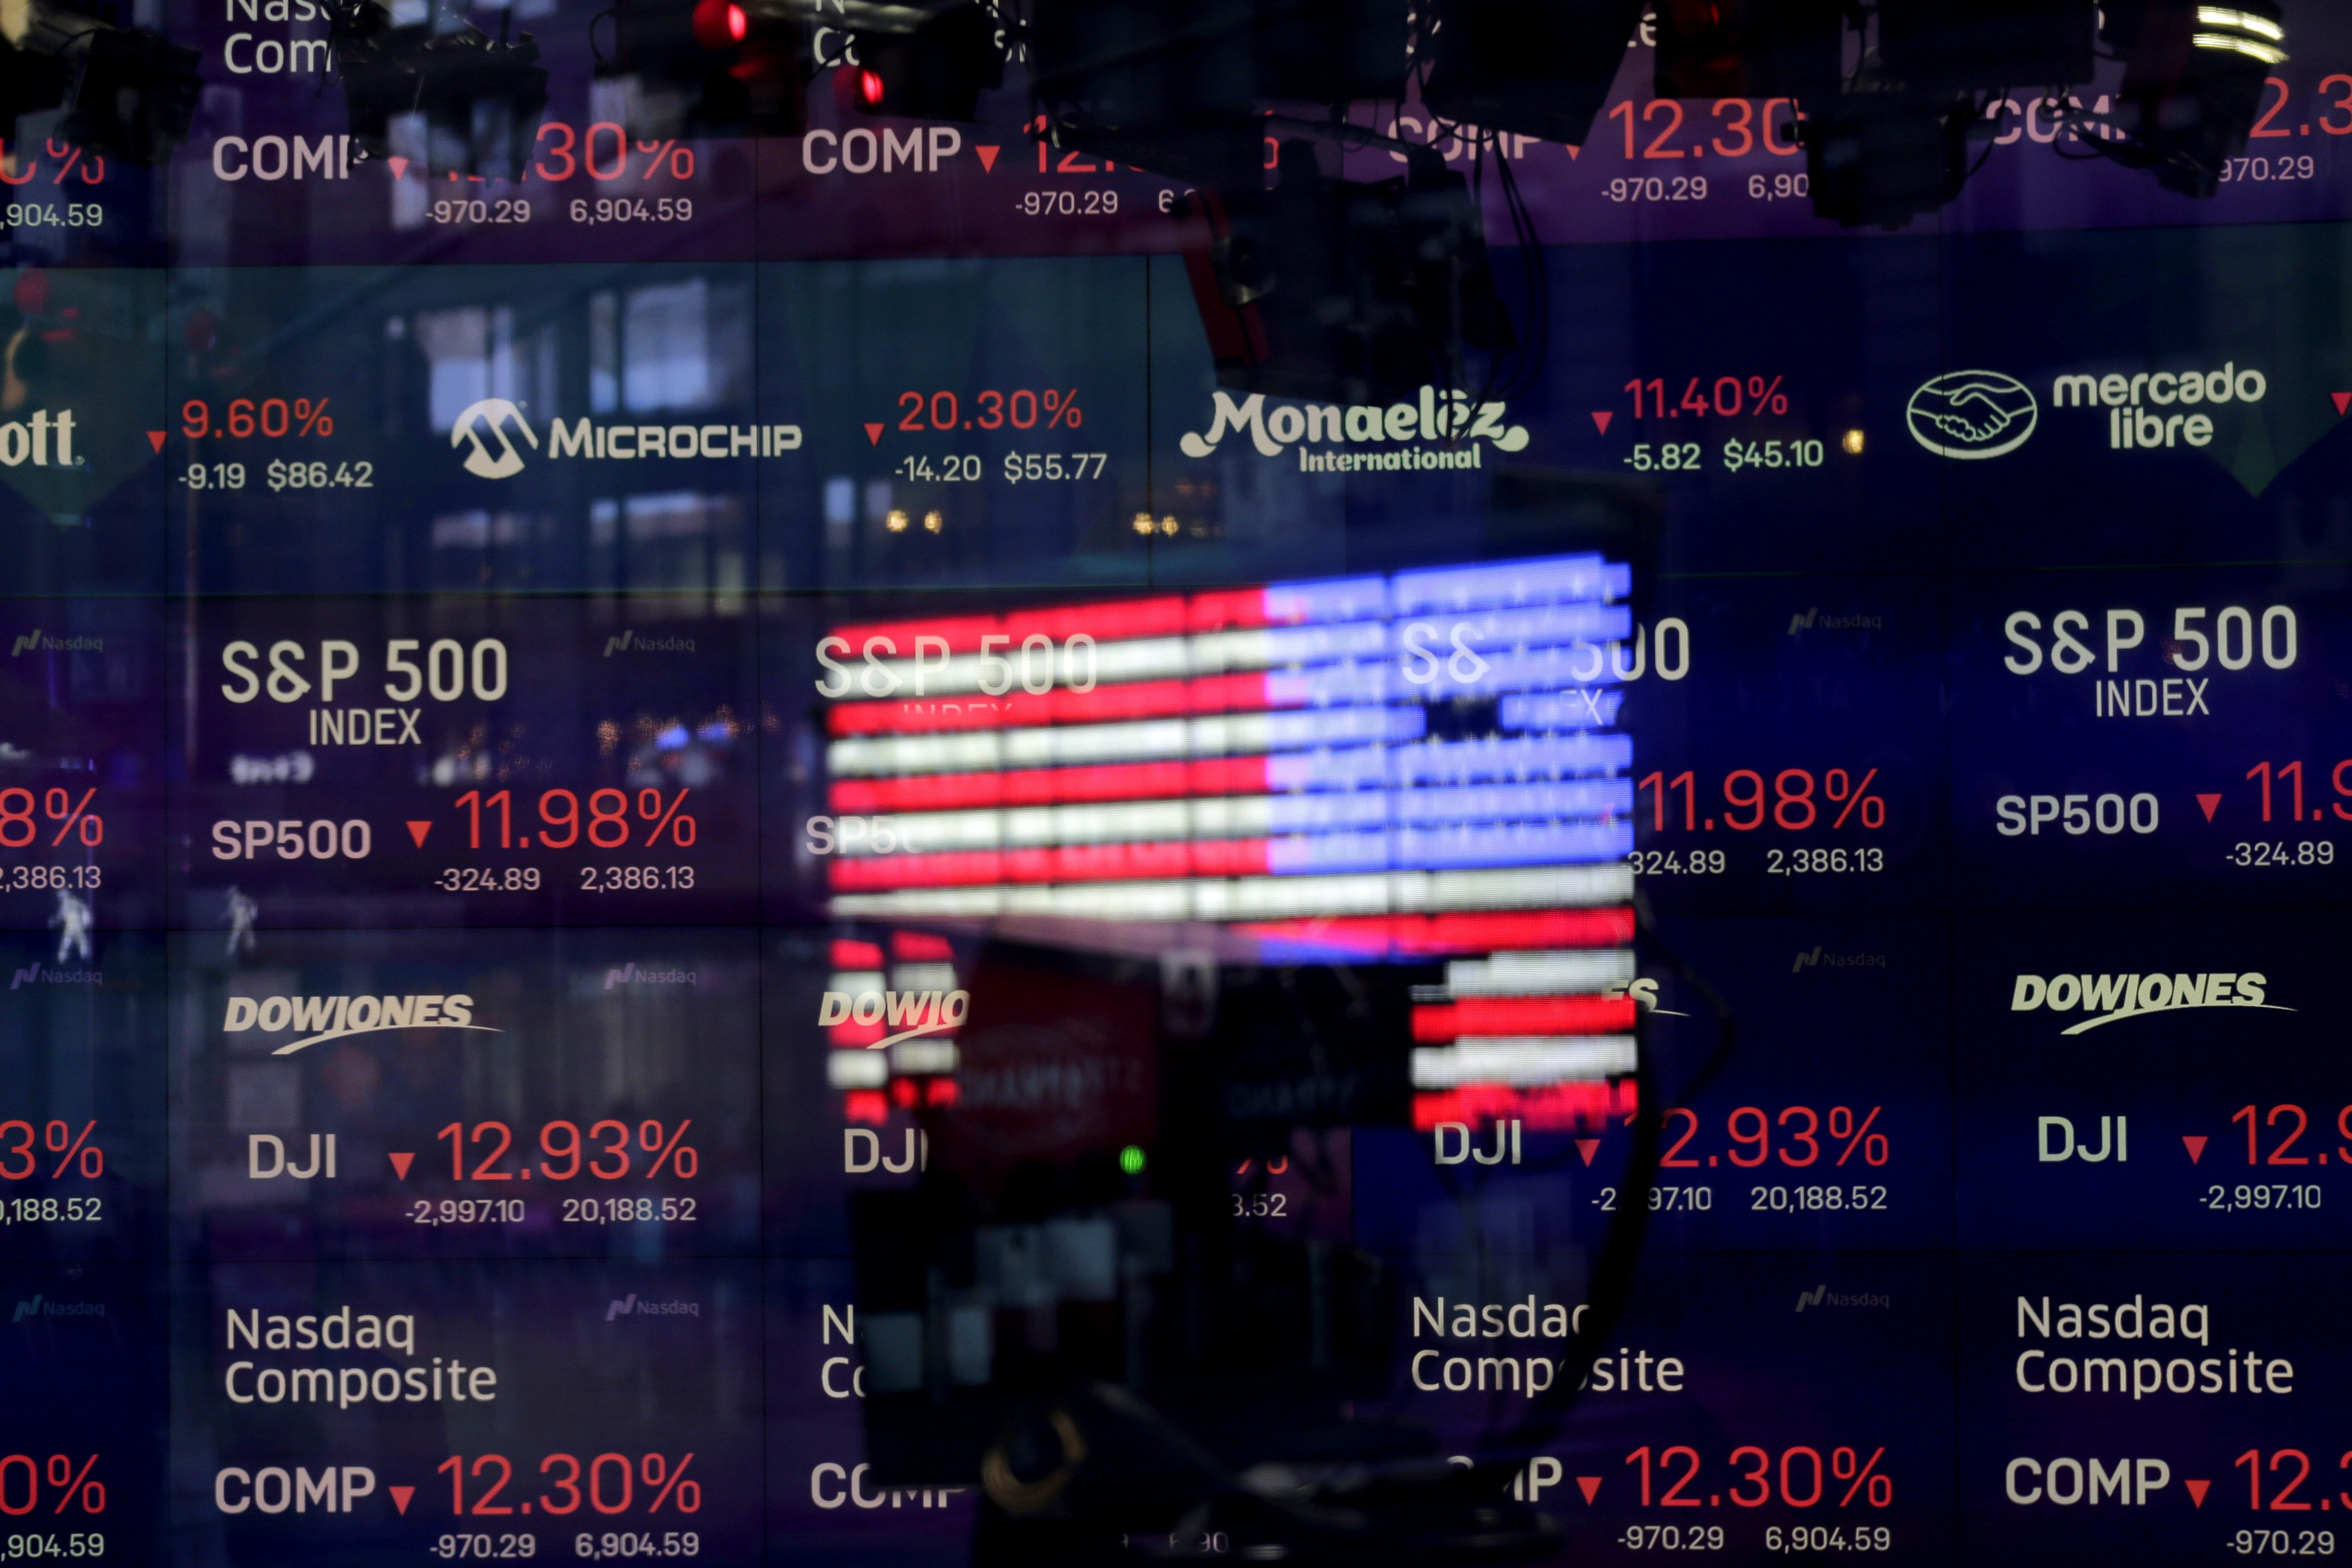 Nasdaq wants to require listed companies to have at least 2 diverse directors